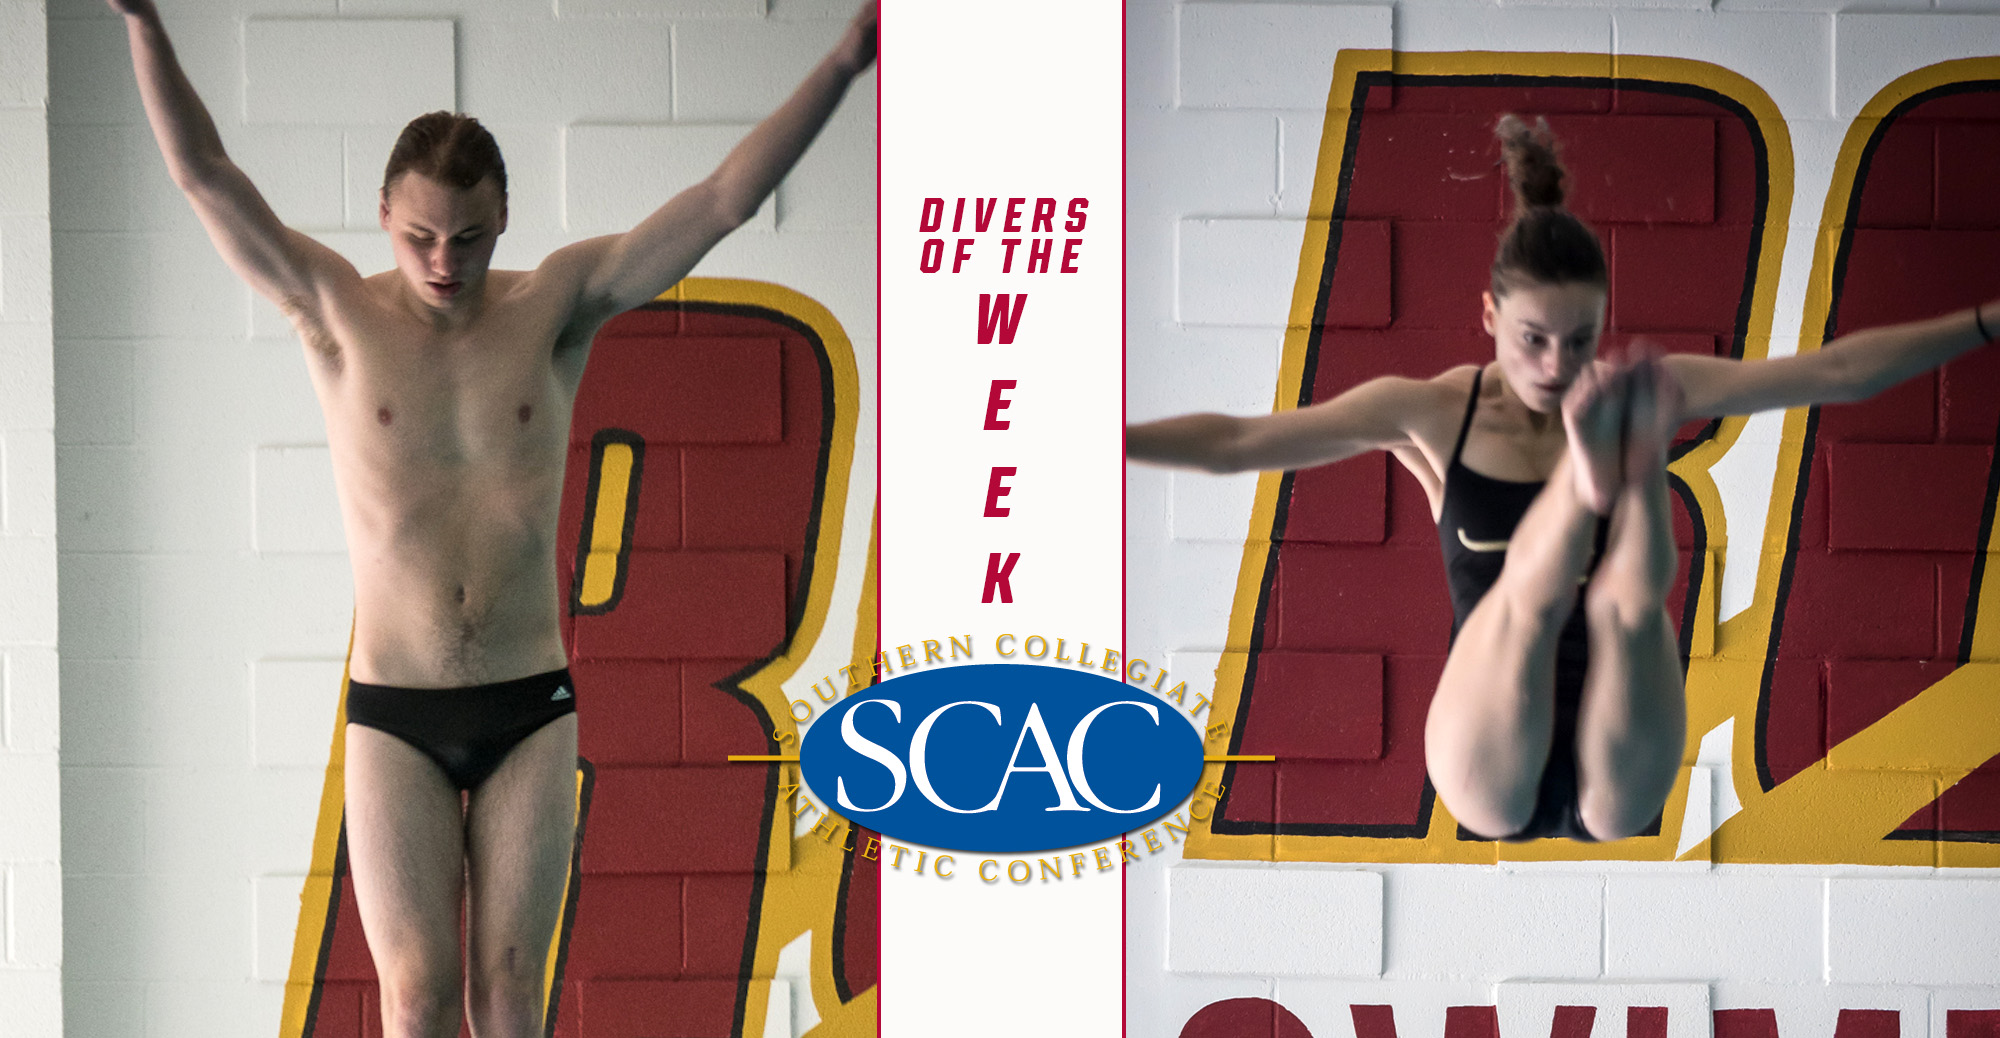 Baker, Tuttle Named SCAC Divers of the Week